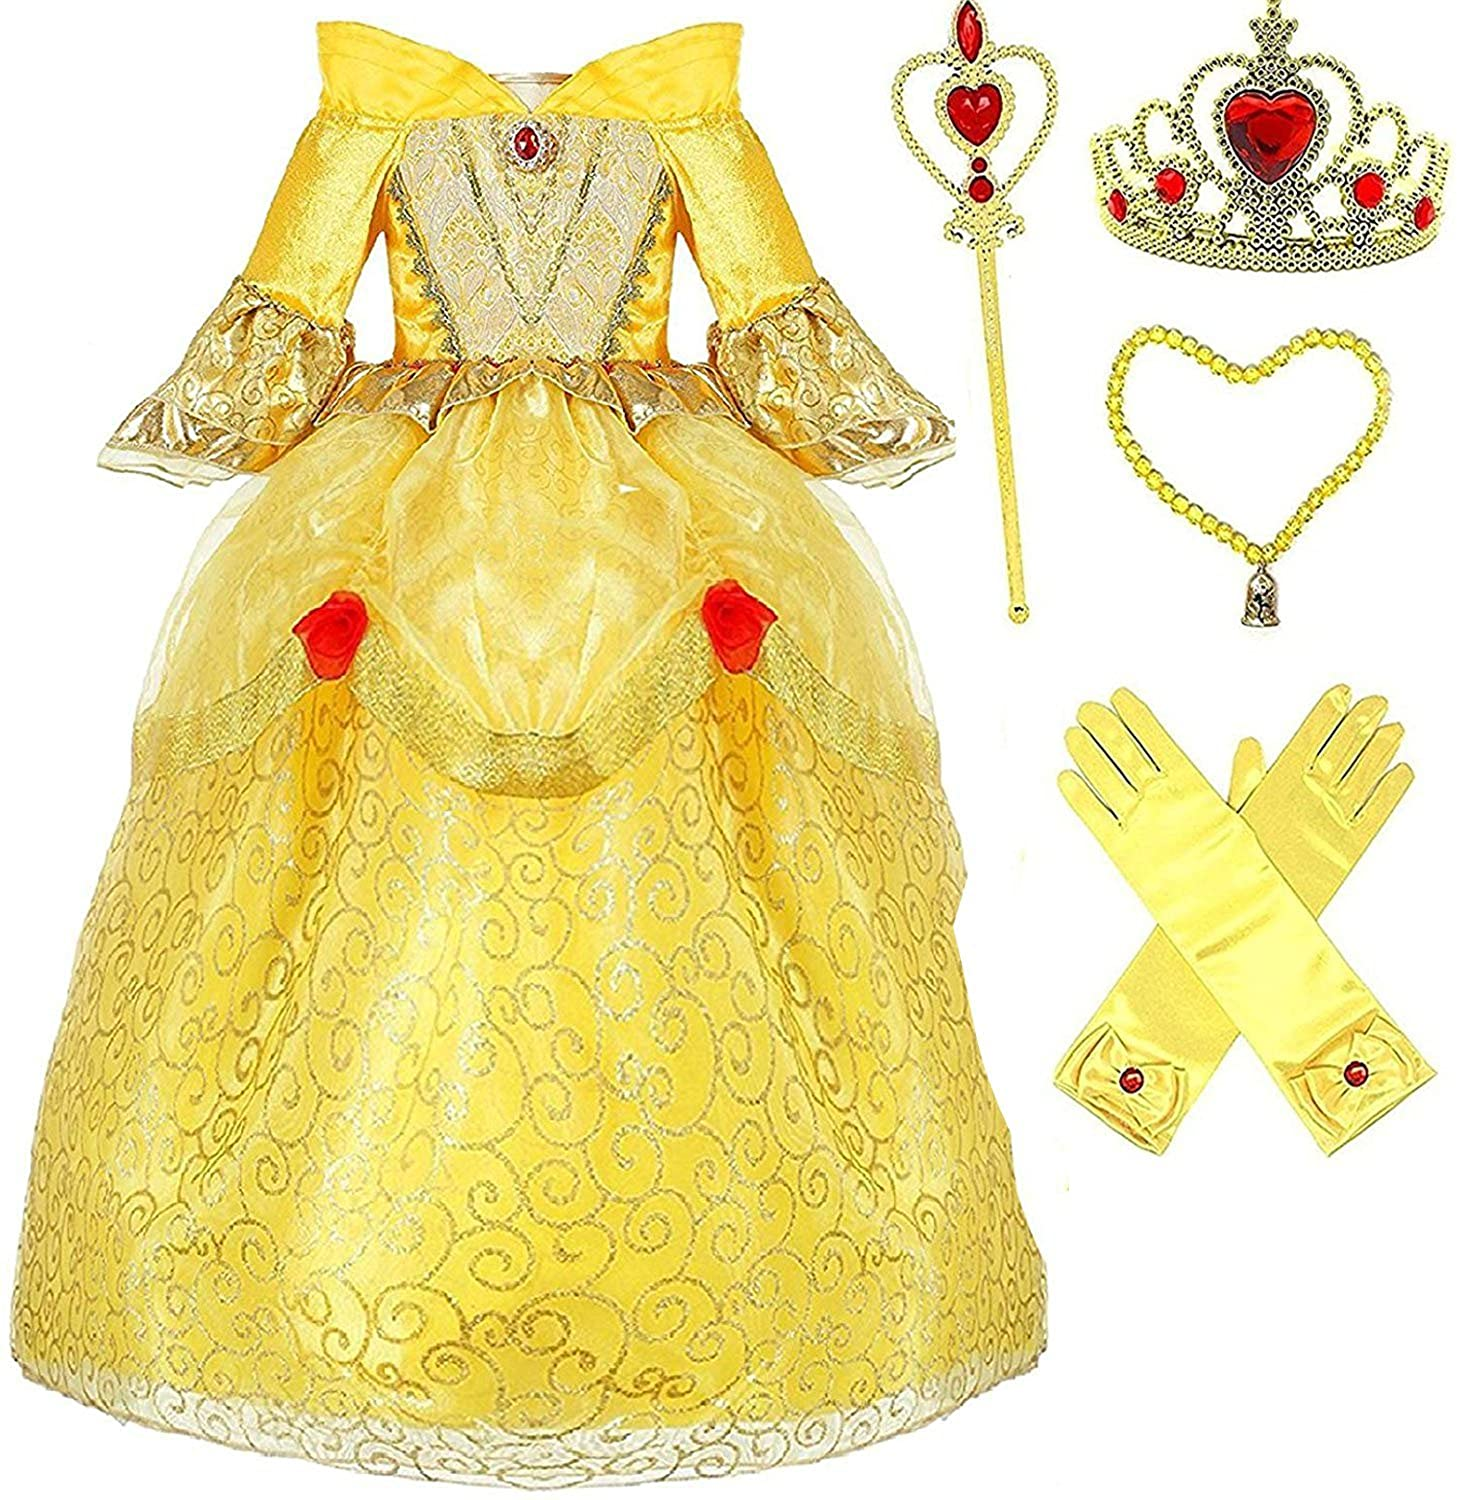 Princess Belle Deluxe Yellow Party Dress Costume Girls Kids